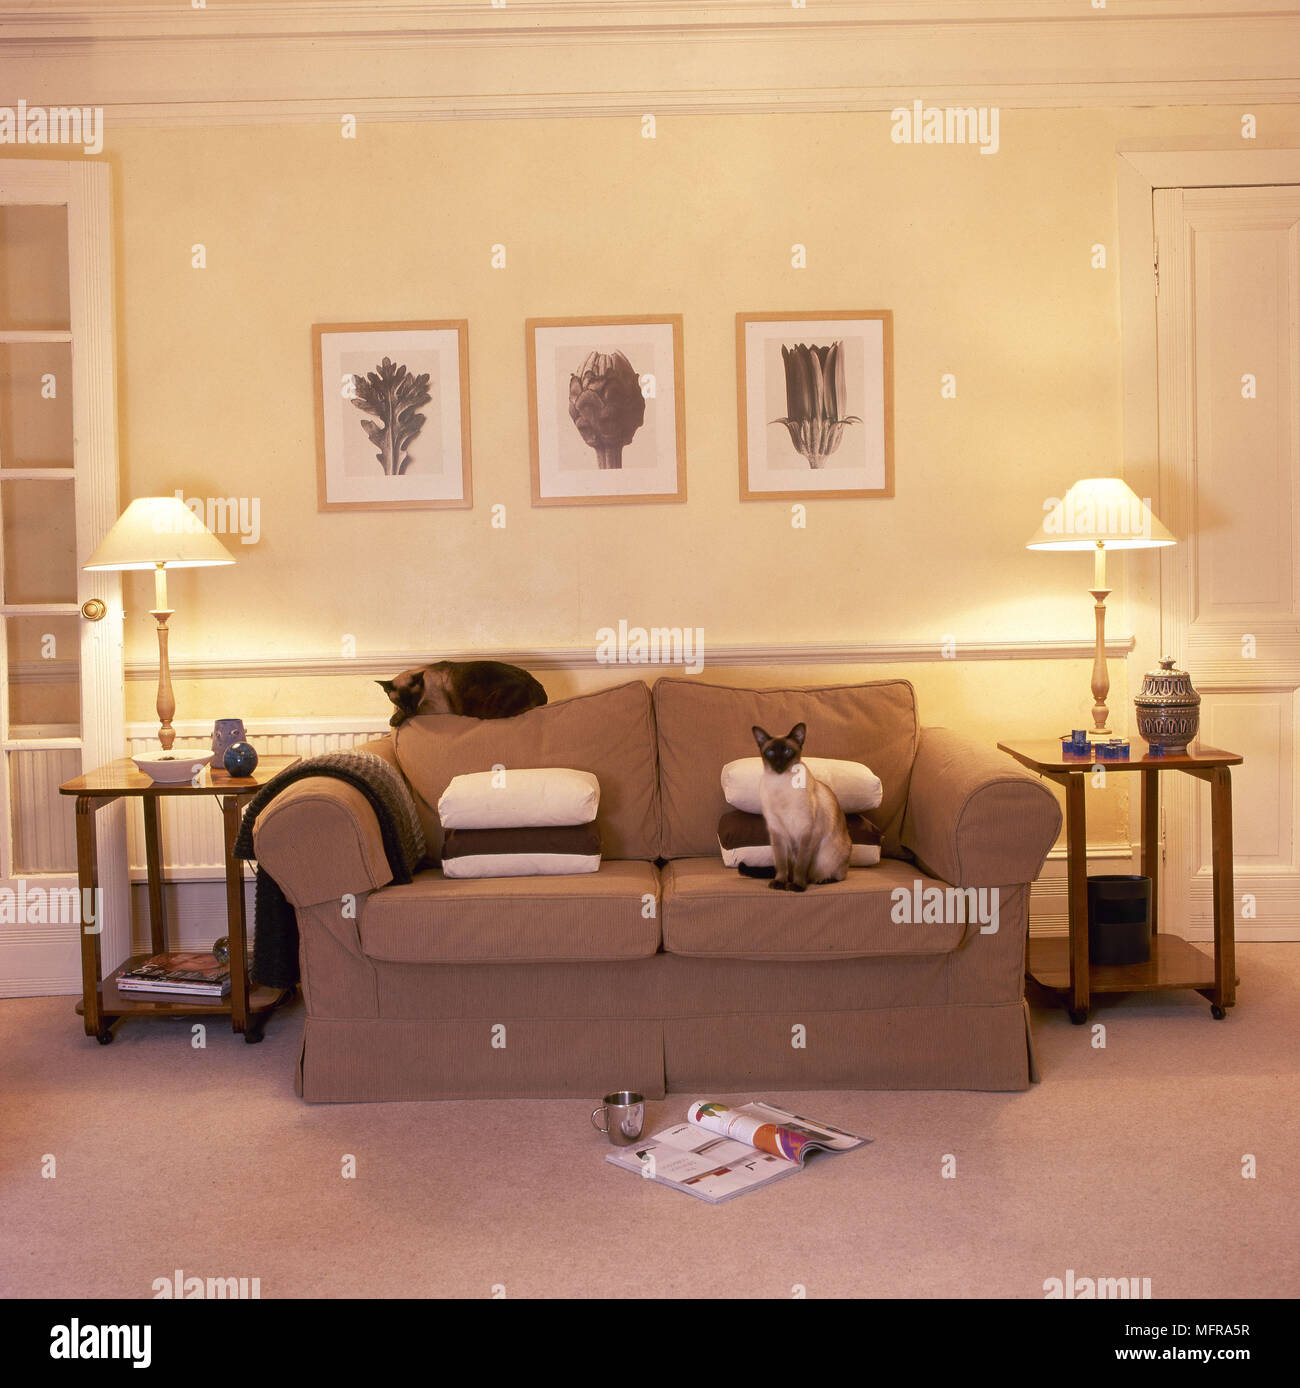 Pale Yellow Walls Stock Photos & Pale Yellow Walls Stock Images - Alamy